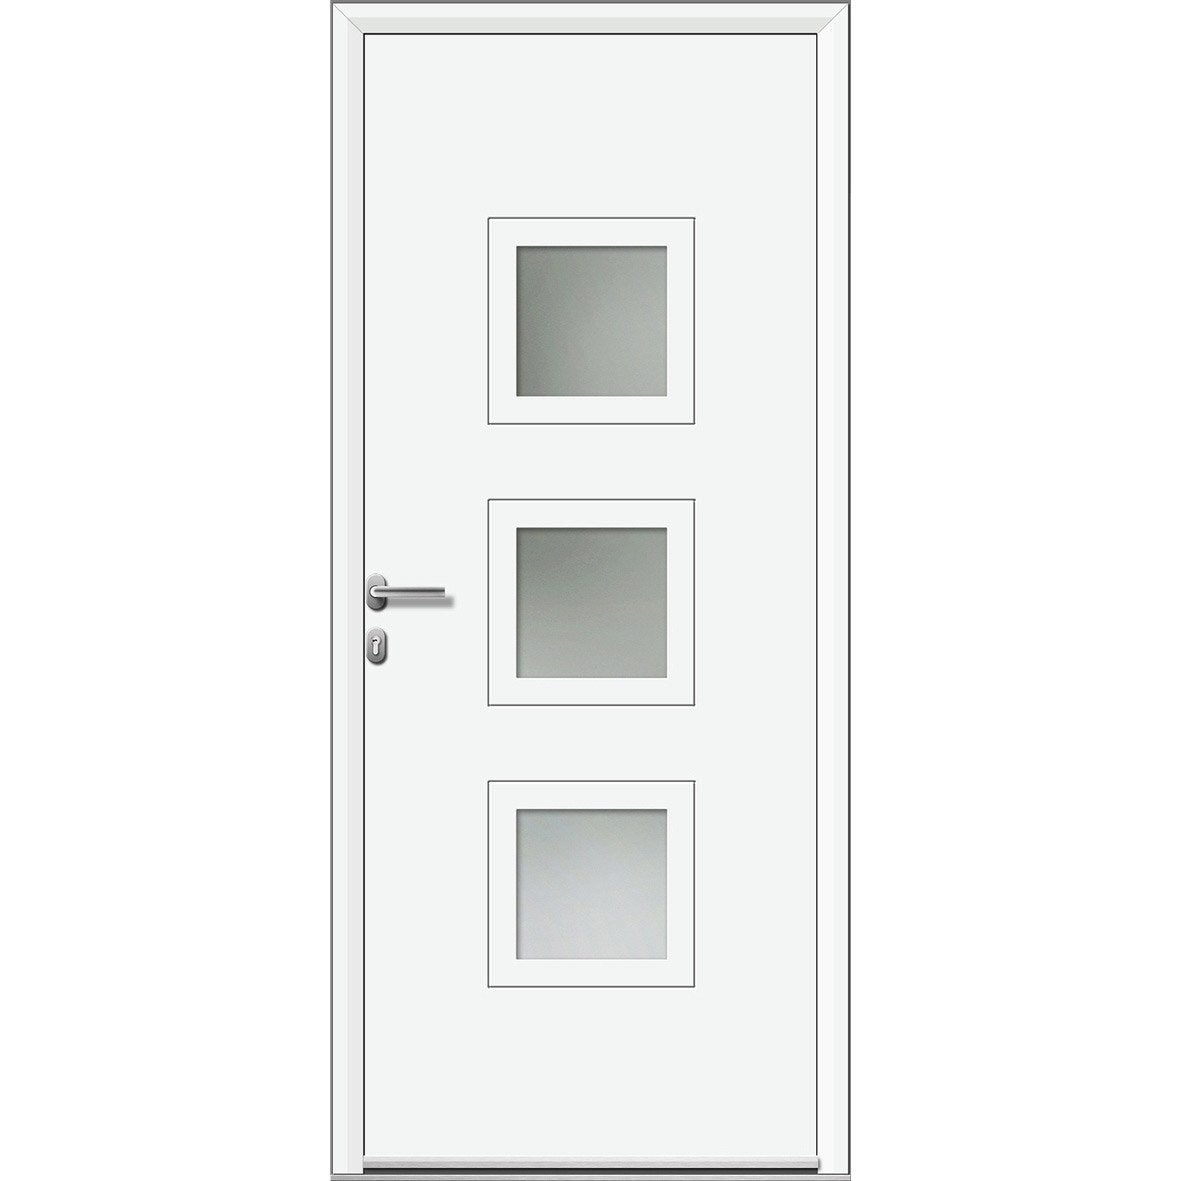 Porte d 39 entr e sur mesure en aluminium phenix artens for Porte 3 points leroy merlin